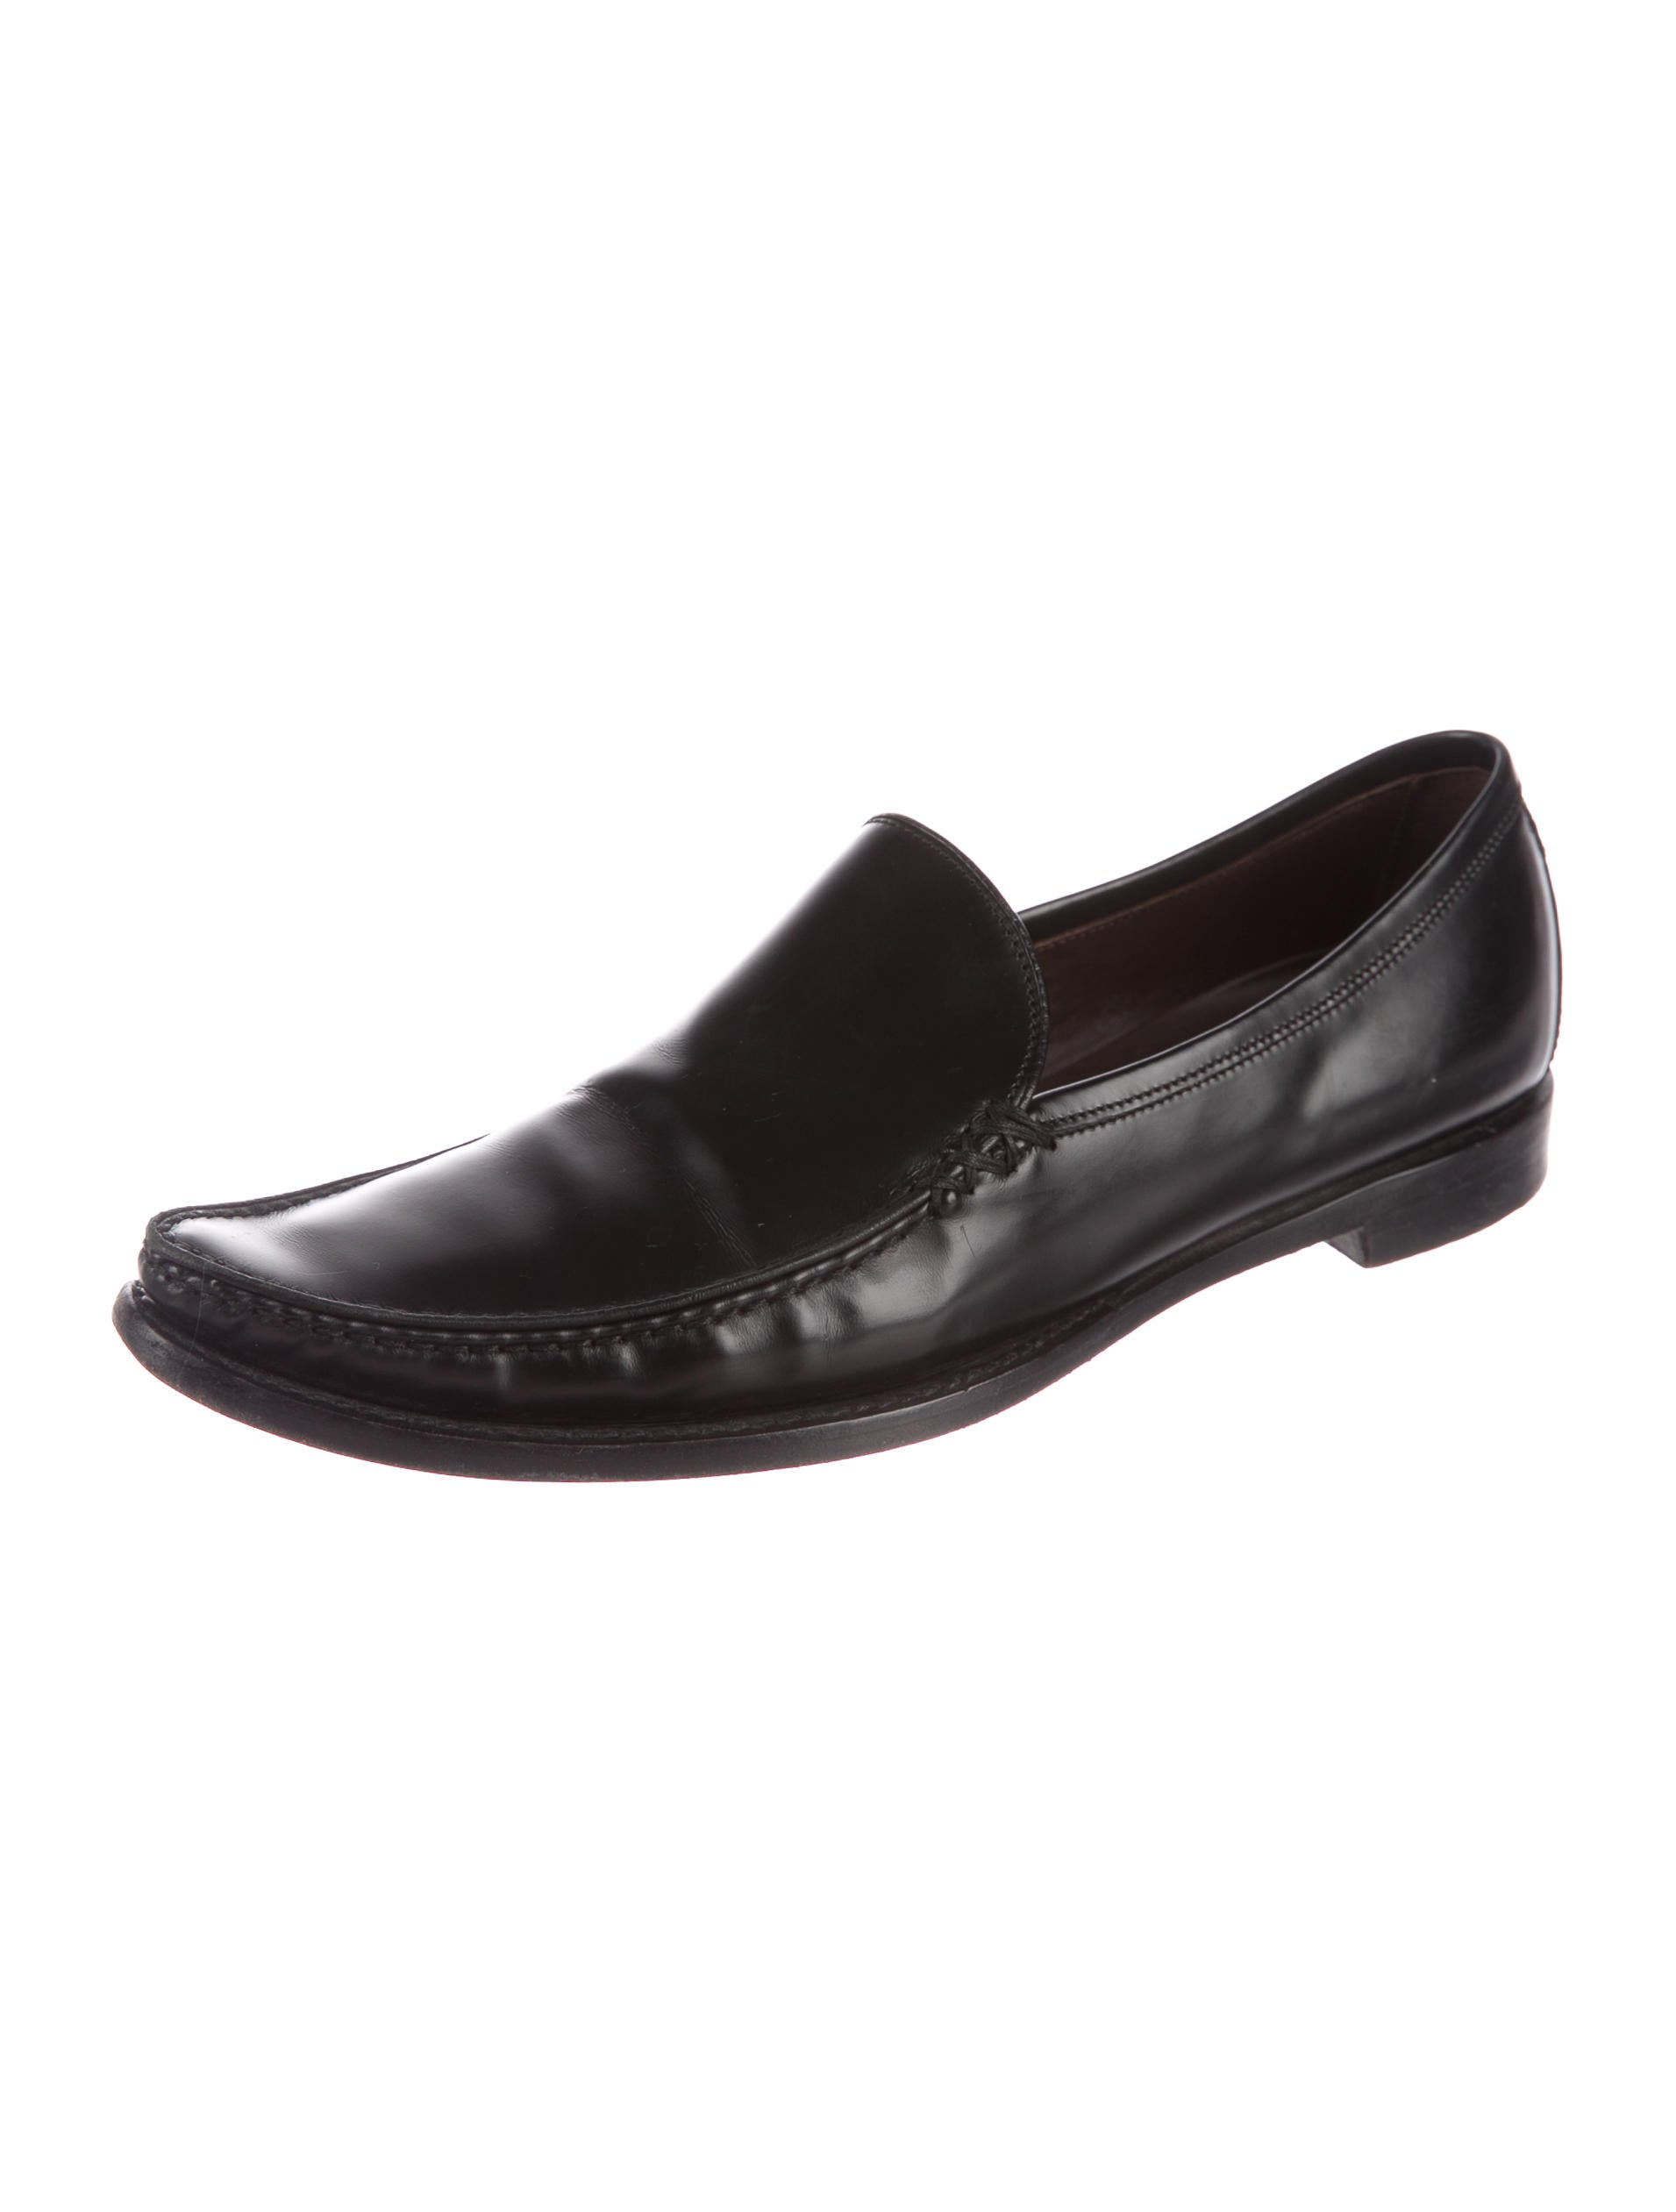 Bottega Veneta Leather Semi Pointed-Toe Loafers online for sale 100% original online clearance store yZcEVb